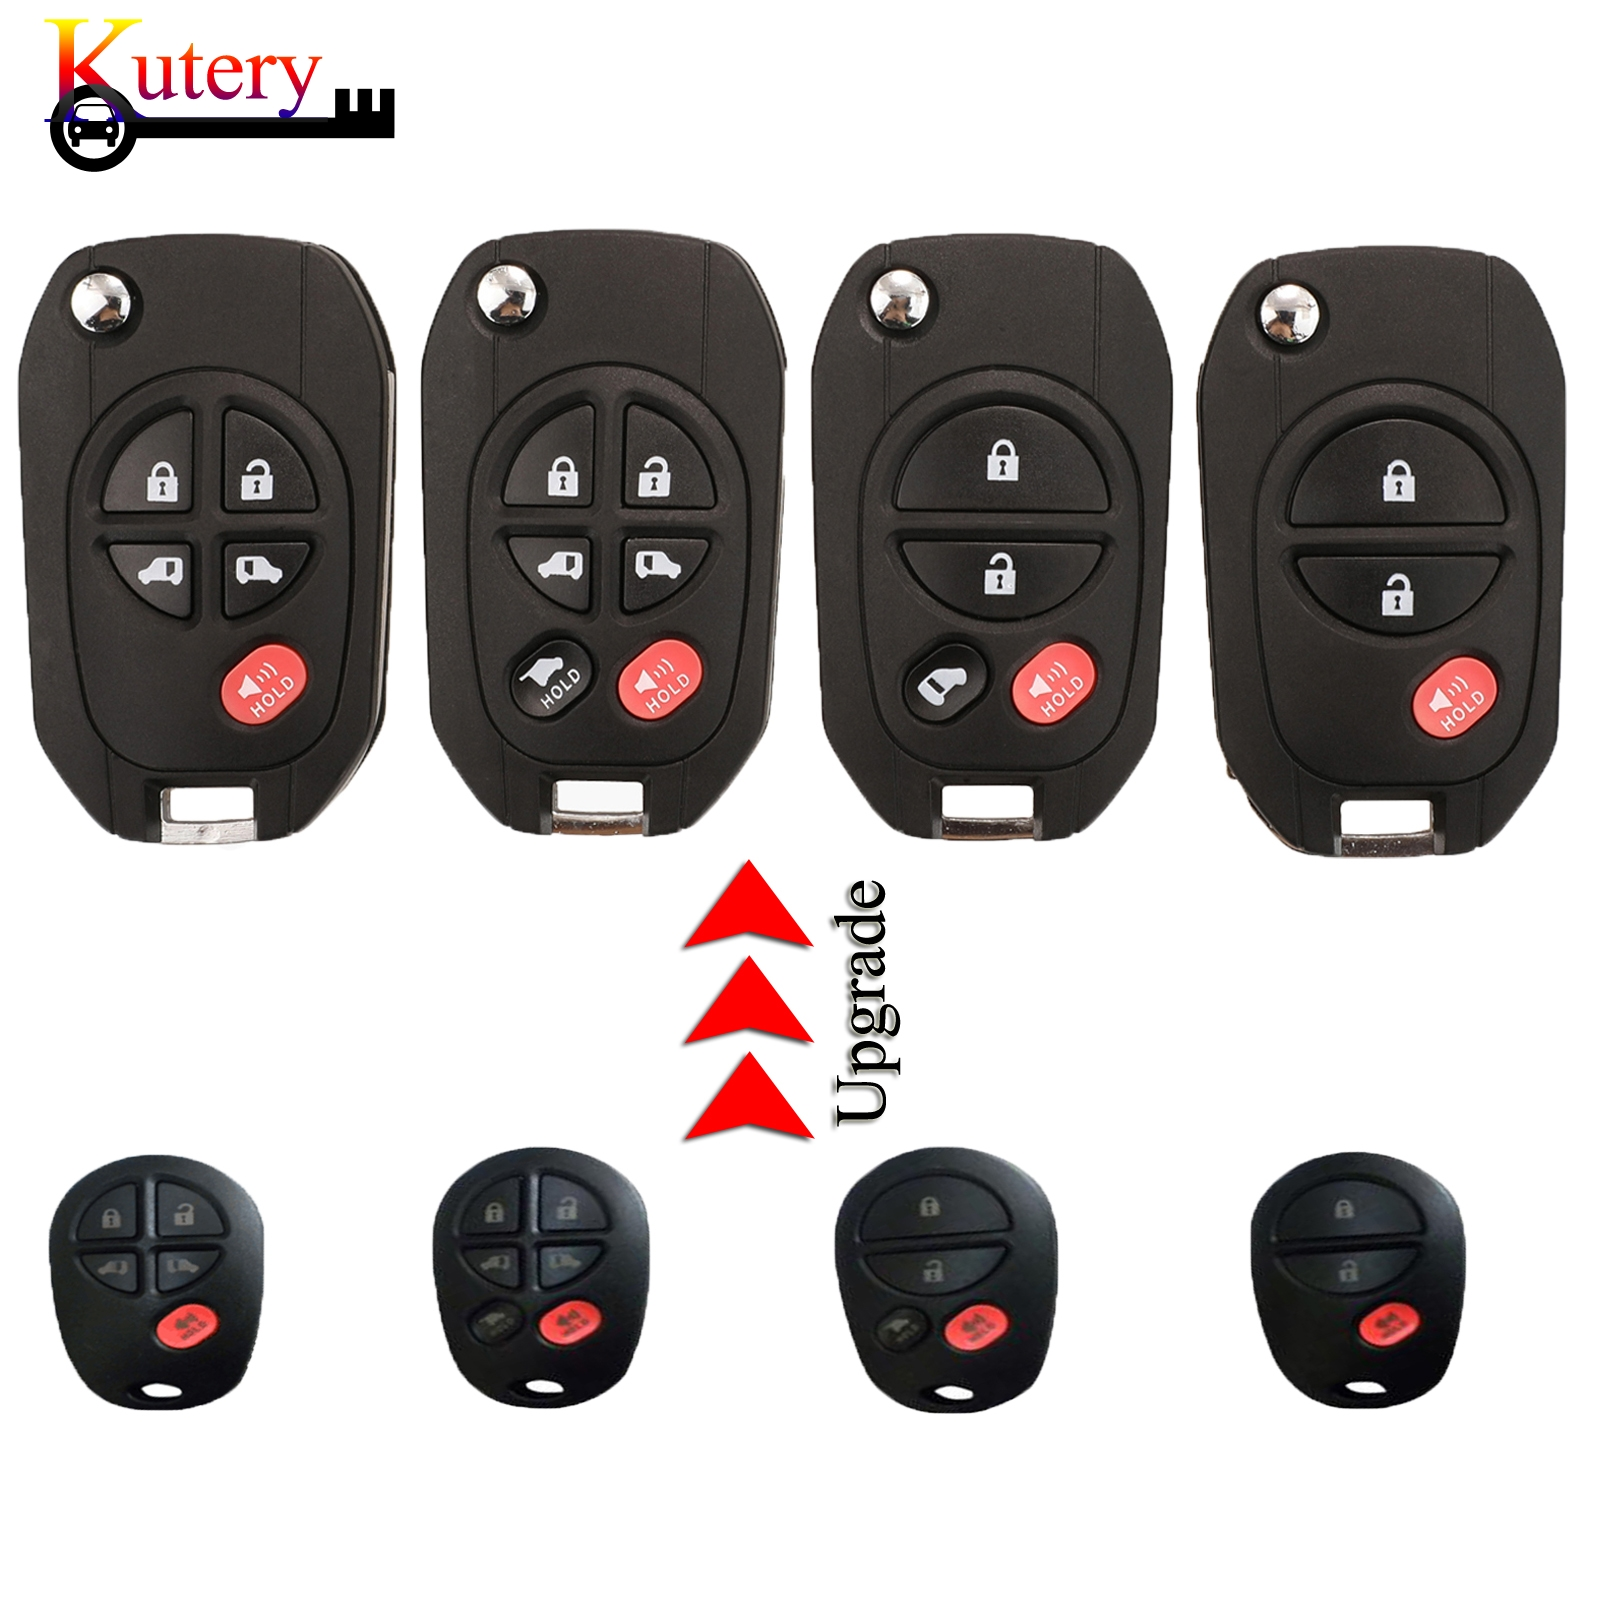 Kutery Remote Control Key Fob Shell Case Fob For Toyota Sequoia Highlander Sienna Tacoma Tundra 3/4/5/6 Buttons